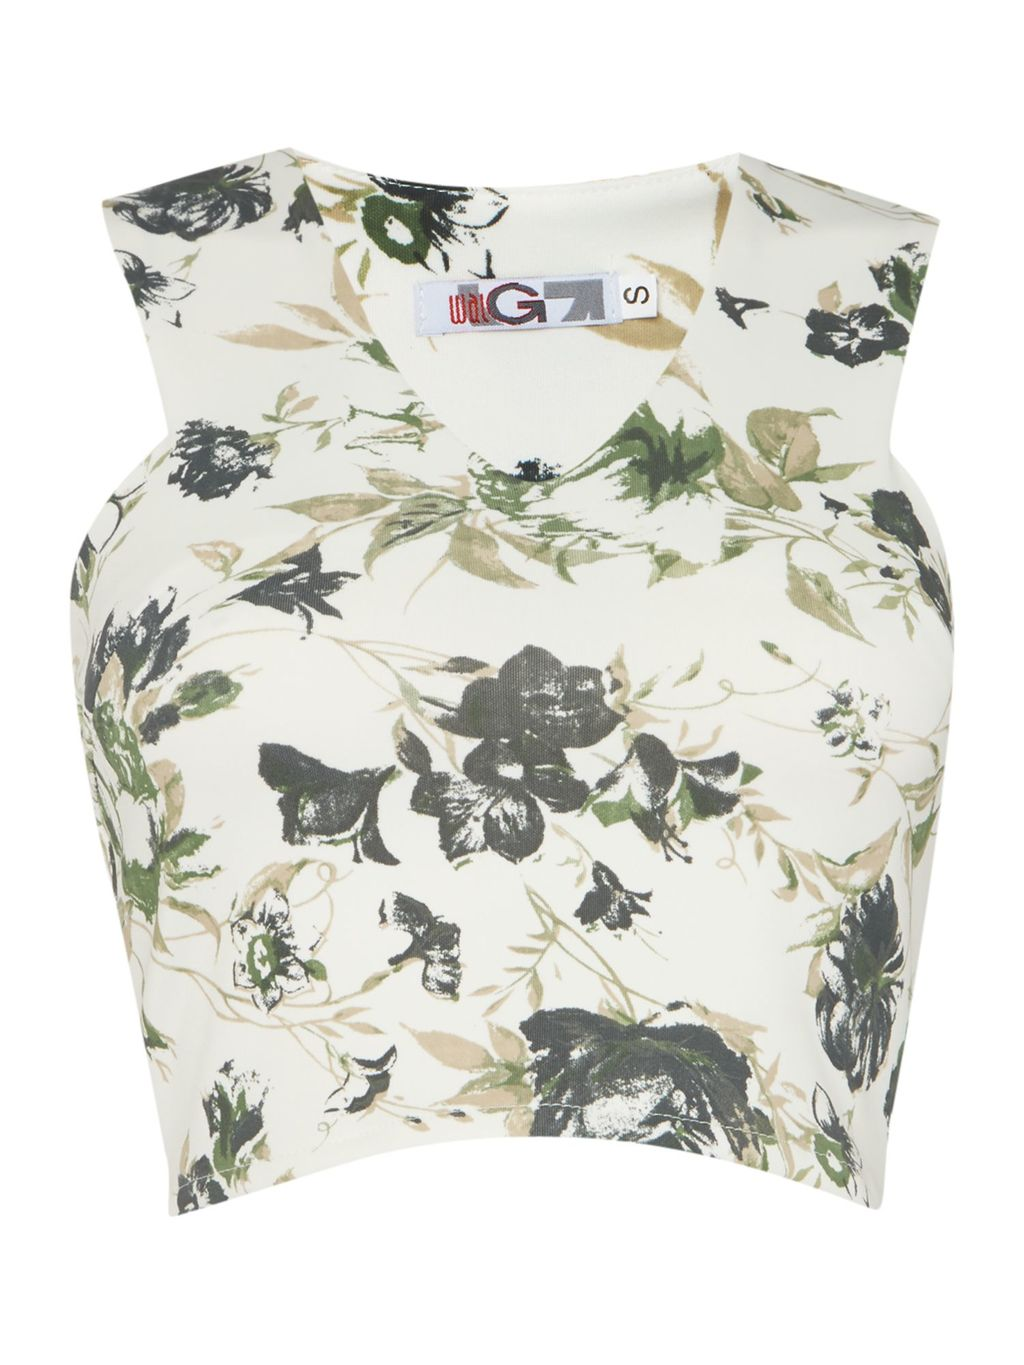 Sleeveless Crop Top, Multi Coloured - neckline: v-neck; sleeve style: sleeveless; length: cropped; predominant colour: ivory/cream; secondary colour: charcoal; occasions: evening; style: top; fibres: polyester/polyamide - 100%; fit: tailored/fitted; sleeve length: sleeveless; pattern type: fabric; pattern size: standard; pattern: florals; texture group: woven light midweight; multicoloured: multicoloured; season: s/s 2016; wardrobe: event